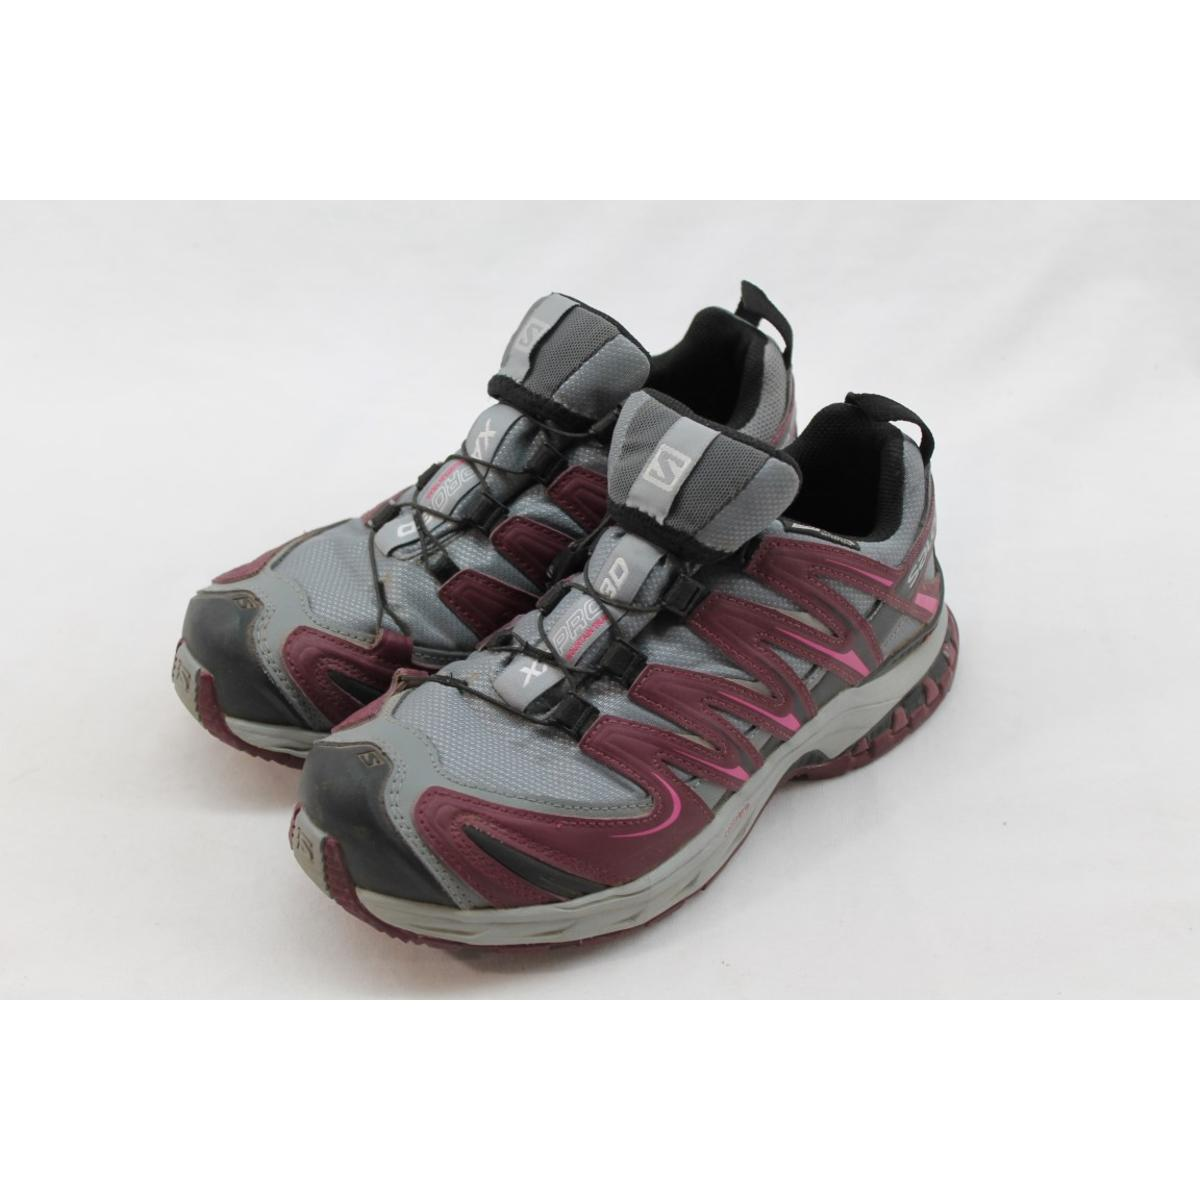 7cd5fca4265d Details about Salomon XA Pro Women s Pearl Grey Bordeaux Hot Pink Running  Shoe 6M